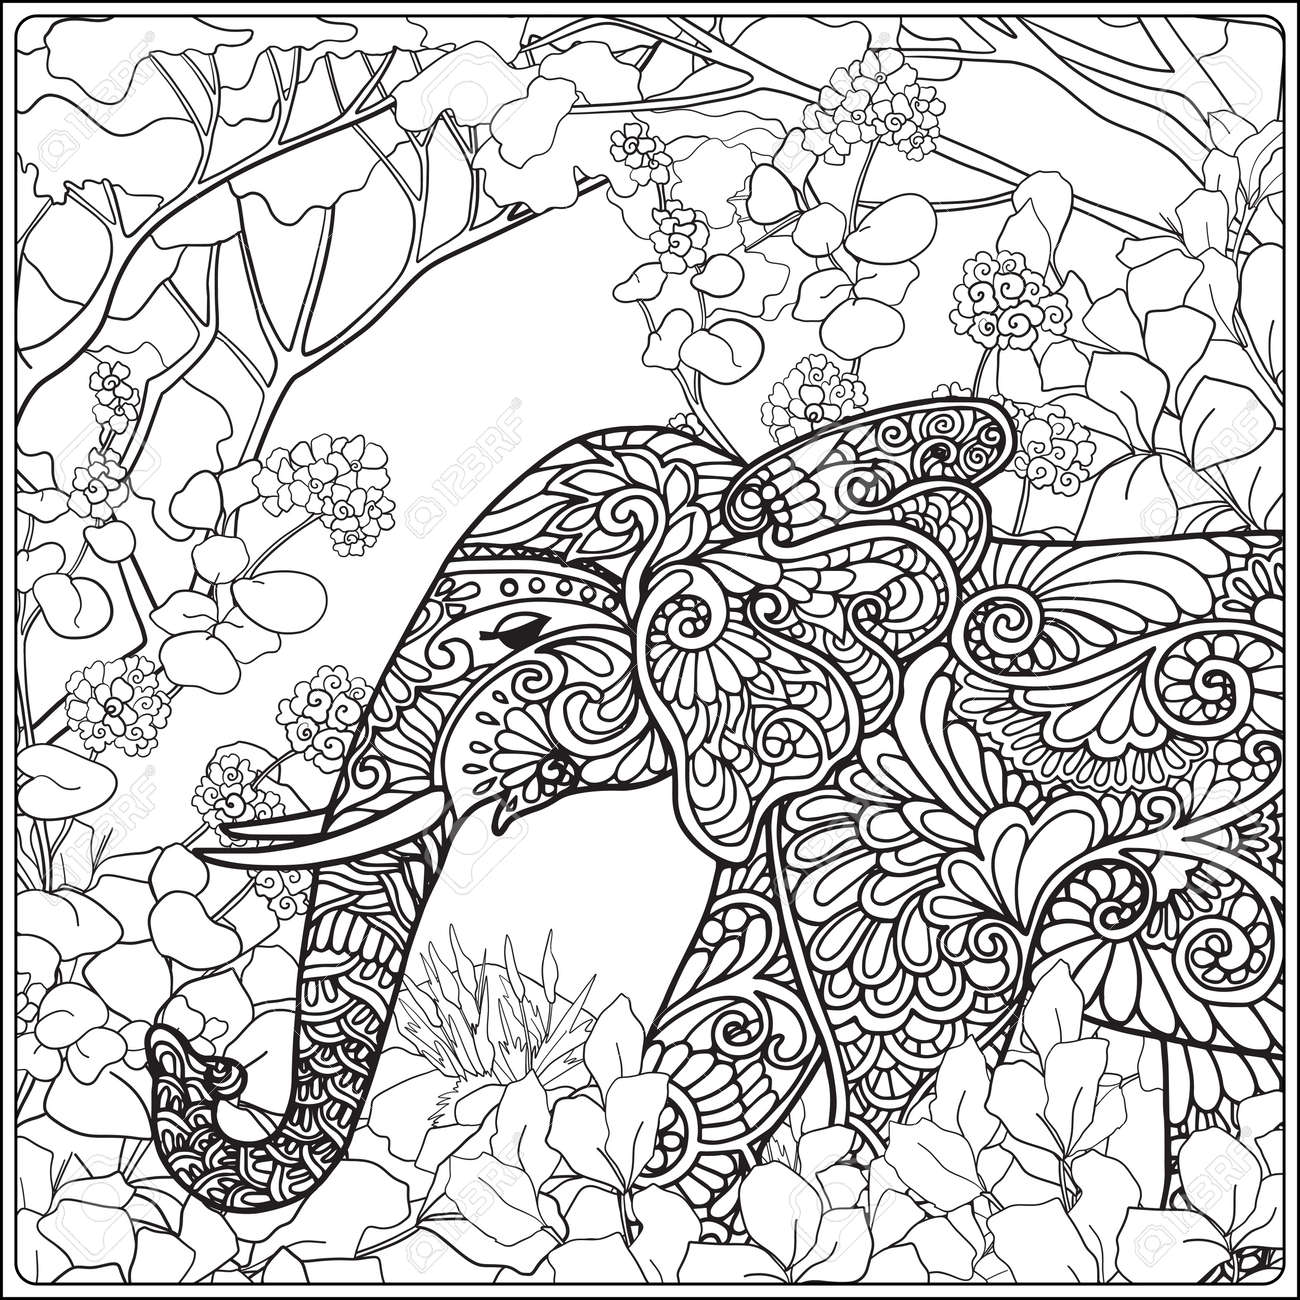 coloring page with elephant in forest coloring book for